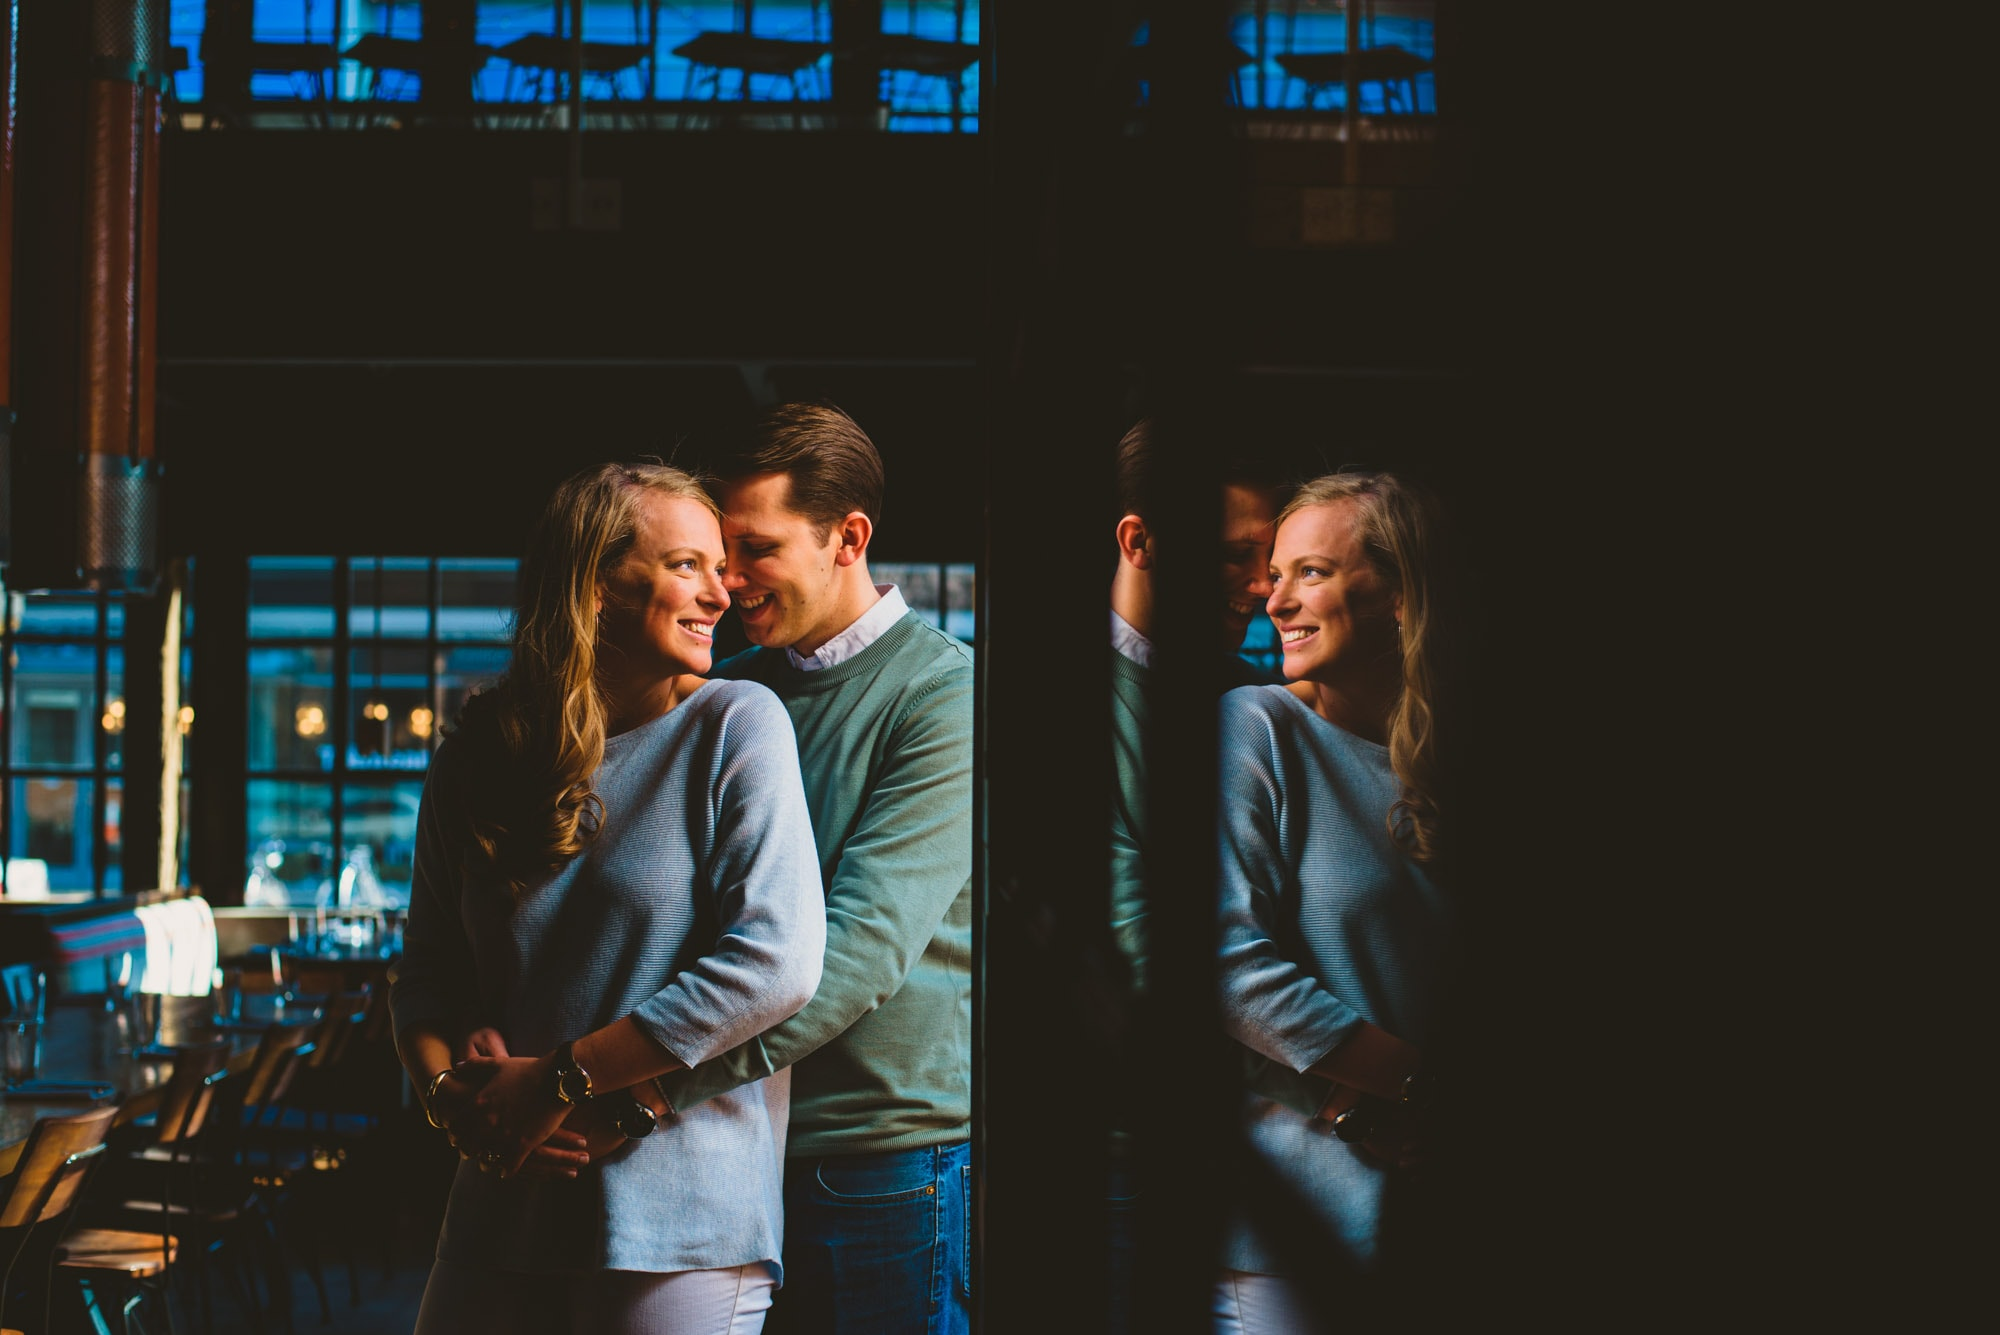 Cool reflections for this image during a couples engagement session at a brewery